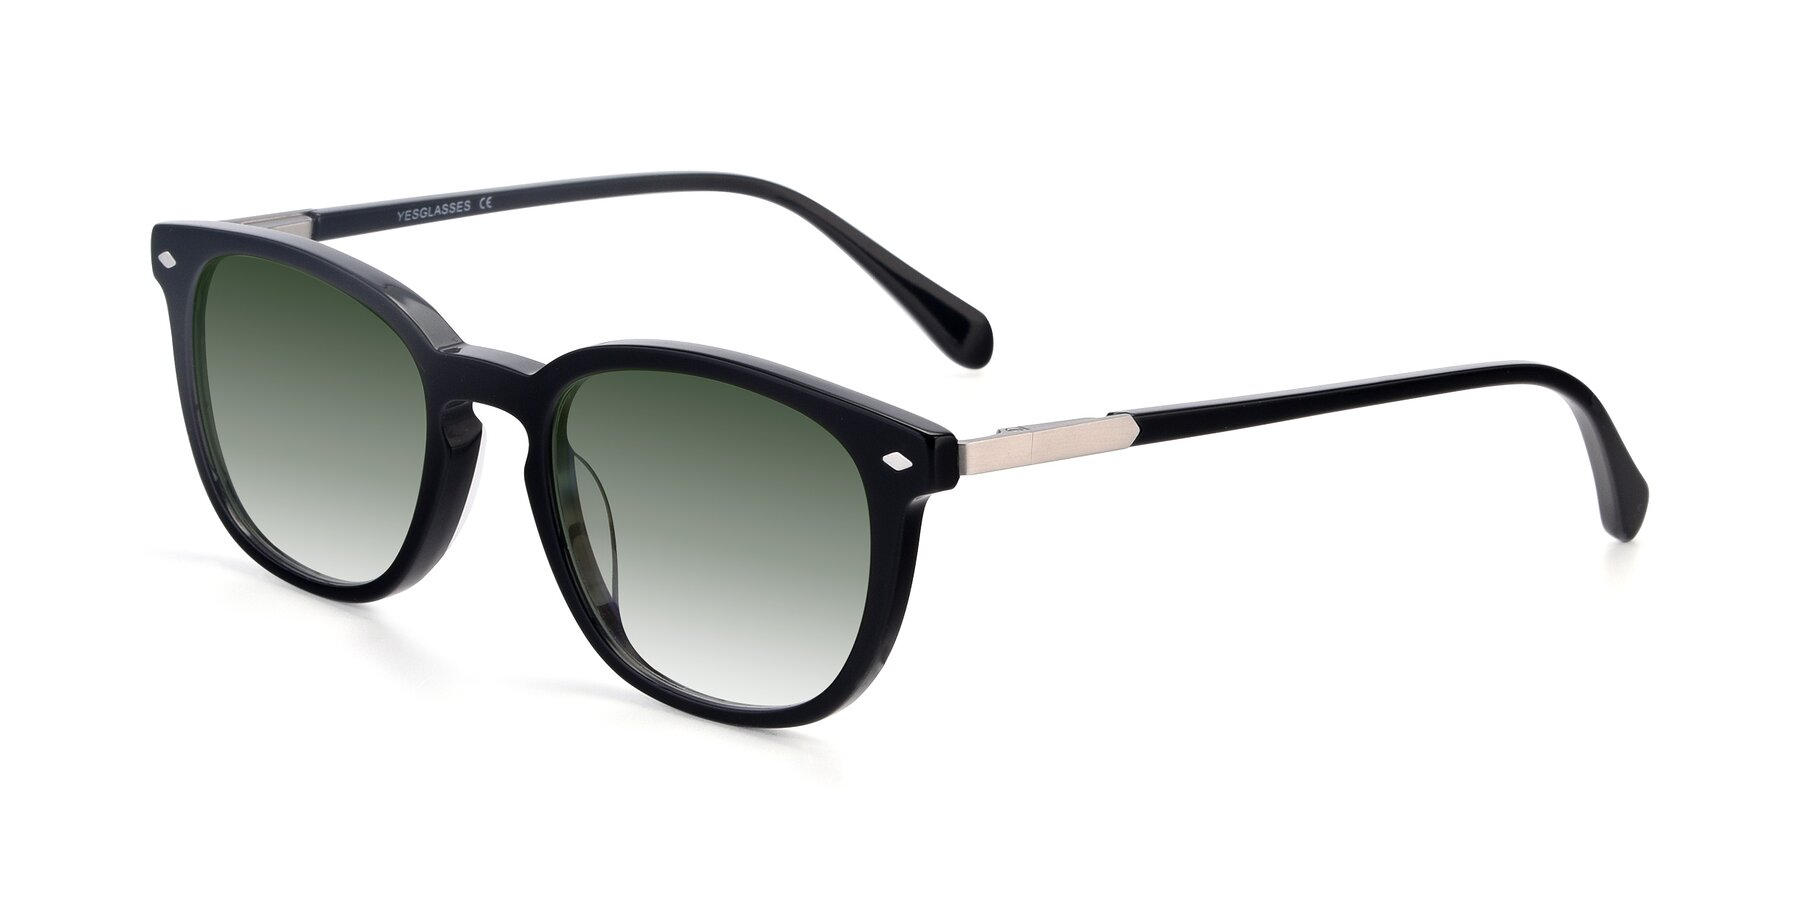 Angle of 17578 in Black with Green Gradient Lenses